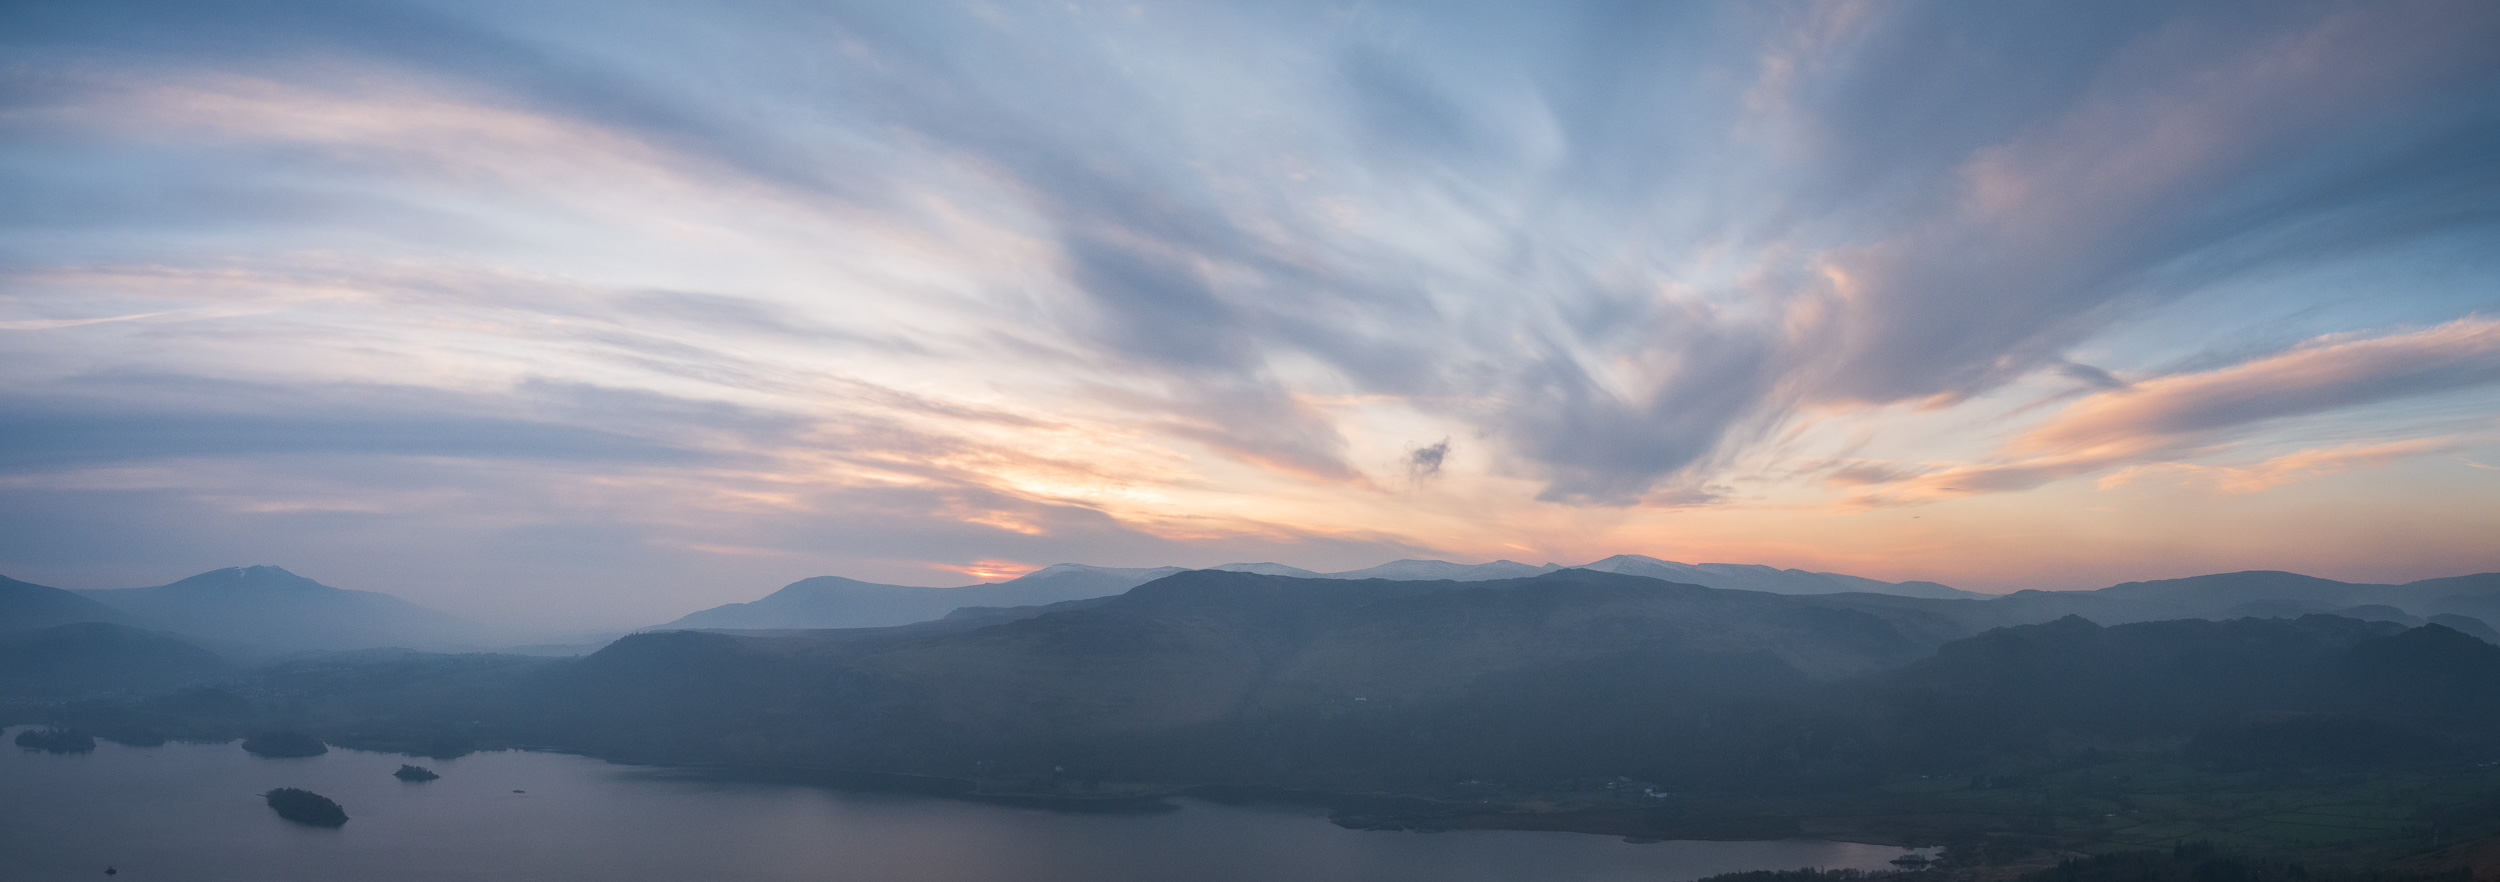 Cat Bells Dawn Panoramic, Lake District  - Panasonic Lumix G80, Lumix 12-60 mm f/3.5-5.6 @ 12mm, f/9.0, 1/60th sec @ ISO 100.